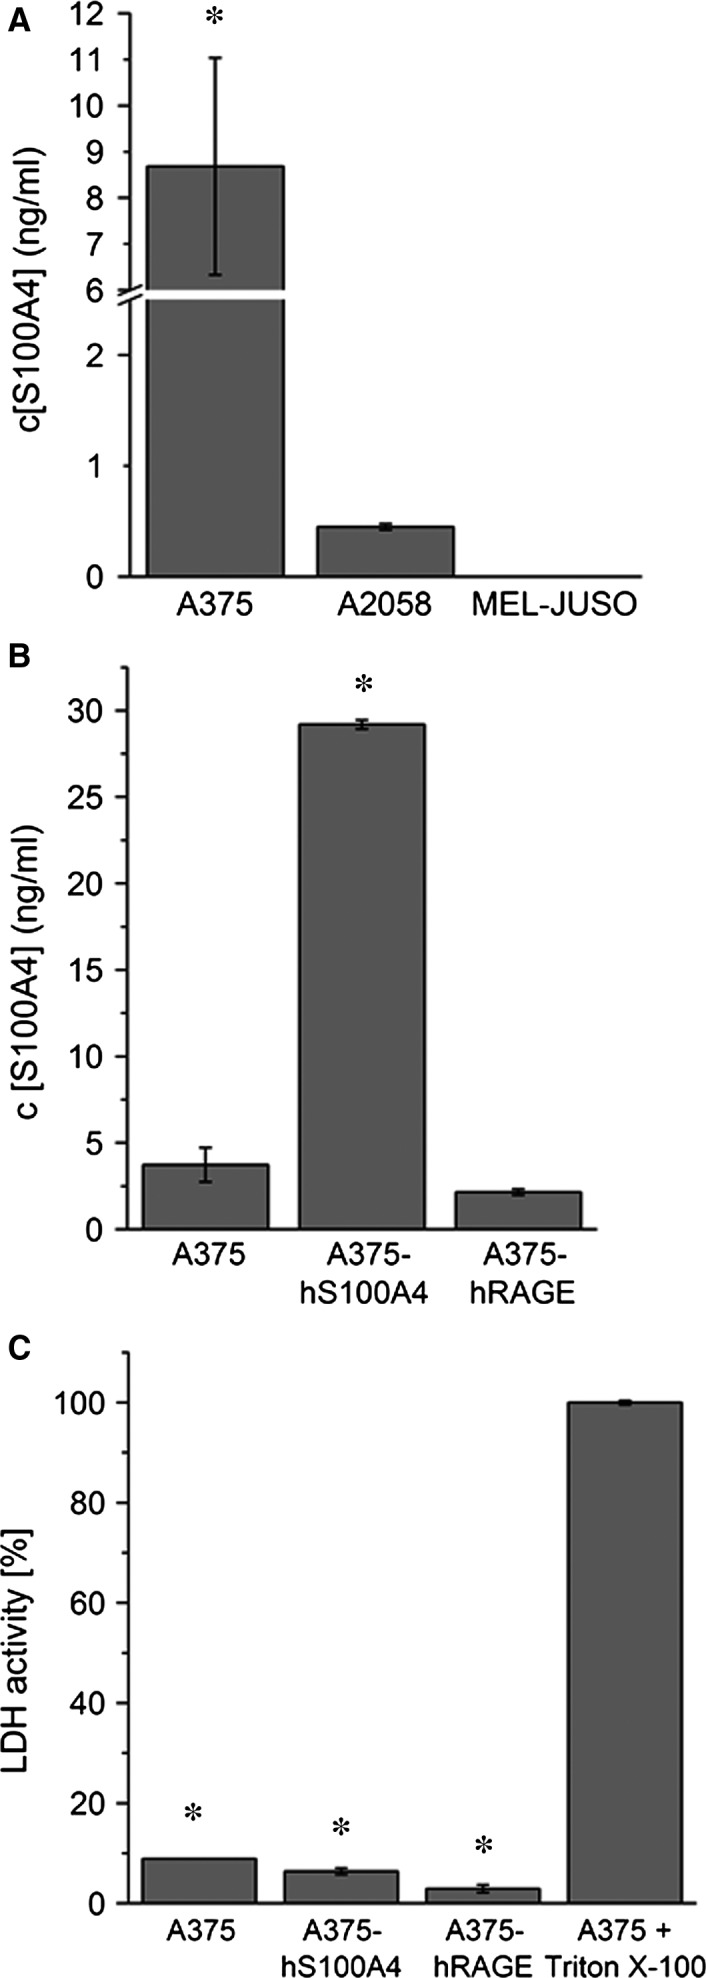 Active secretion of S100A4. ( A ) Extracellular S100A4 was detected after 4 hrs of incubation in cell culture supernatants of A375, A2058, and MEL ‐ JUSO cells via ELISA (mean ± S.E.M., n = 3, * P